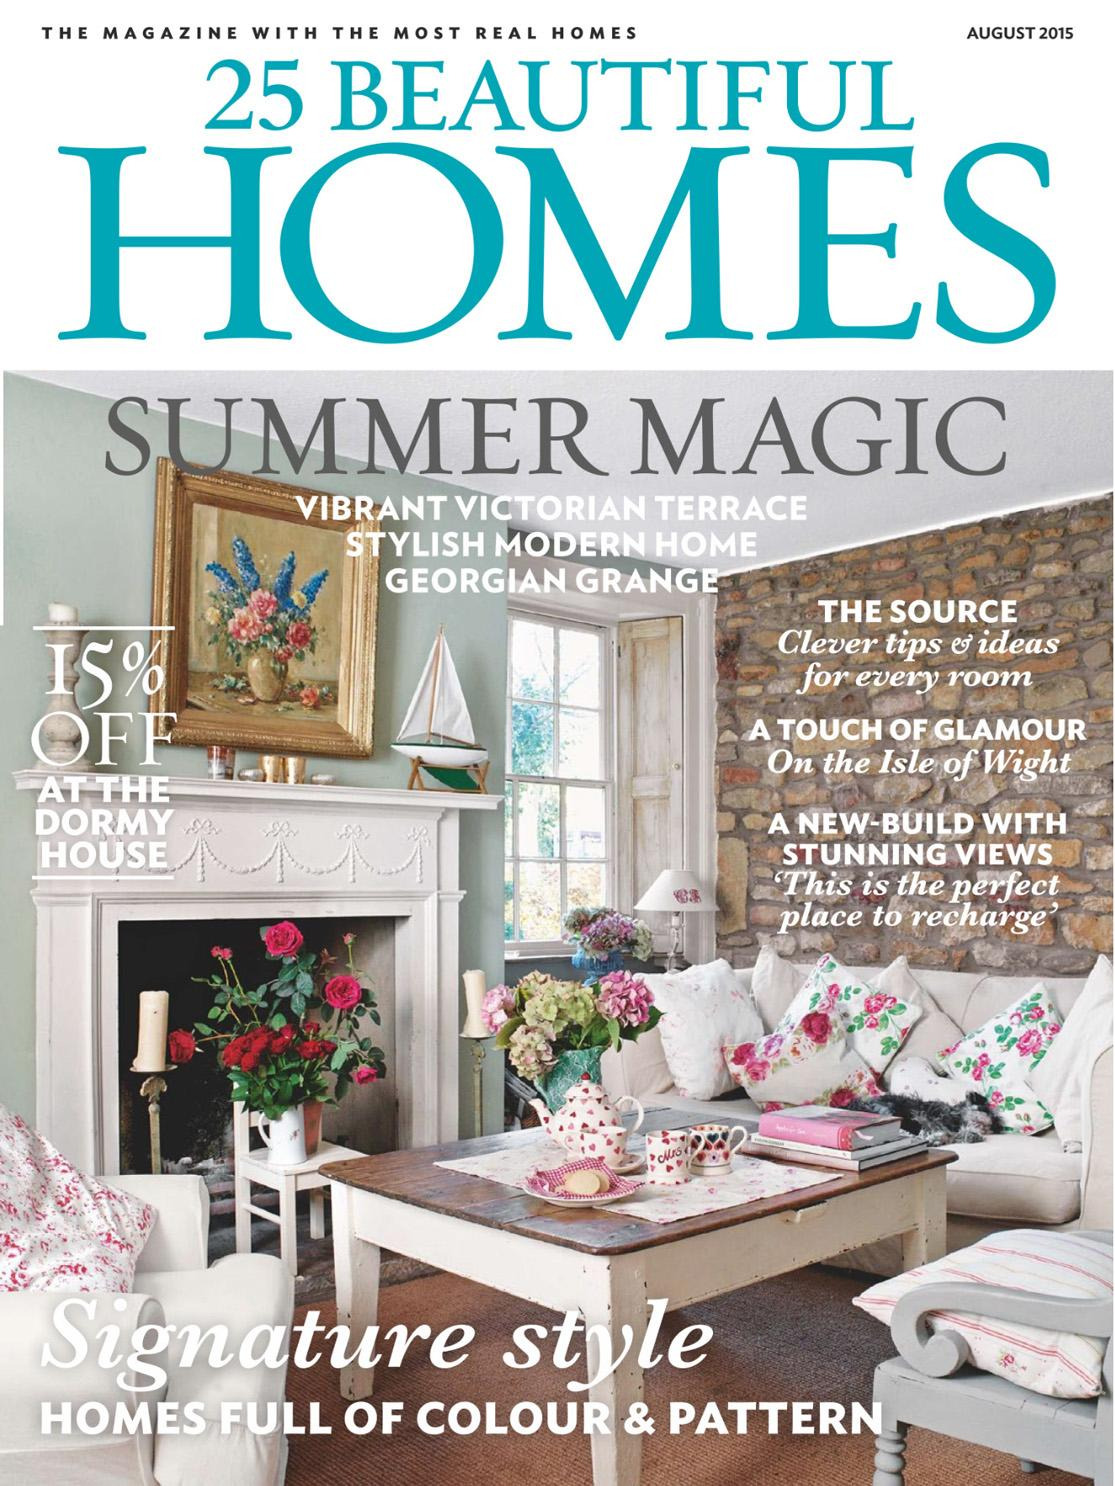 25 beautiful homes august 2015 sh